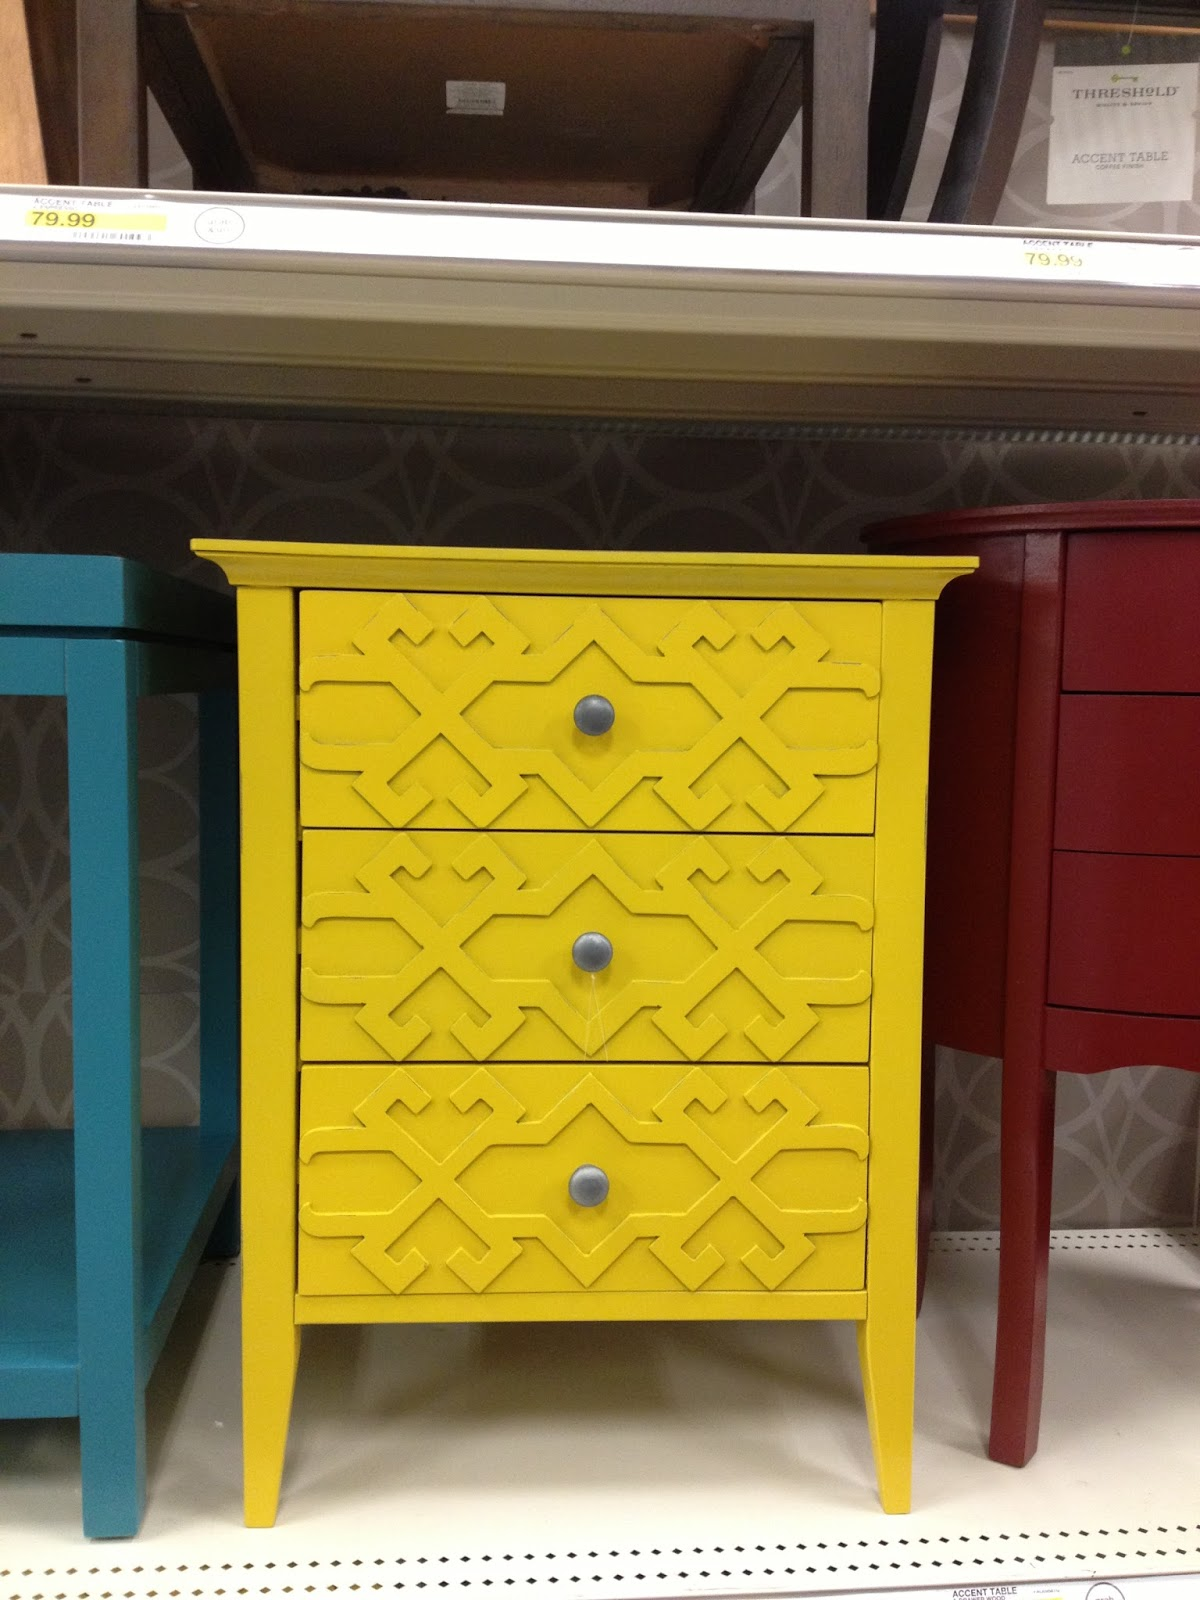 bedside units the terrific best small yellow end table gallery probably beautiful bedroom tables target tures lmob blog img really liked this python fabric covered are currently